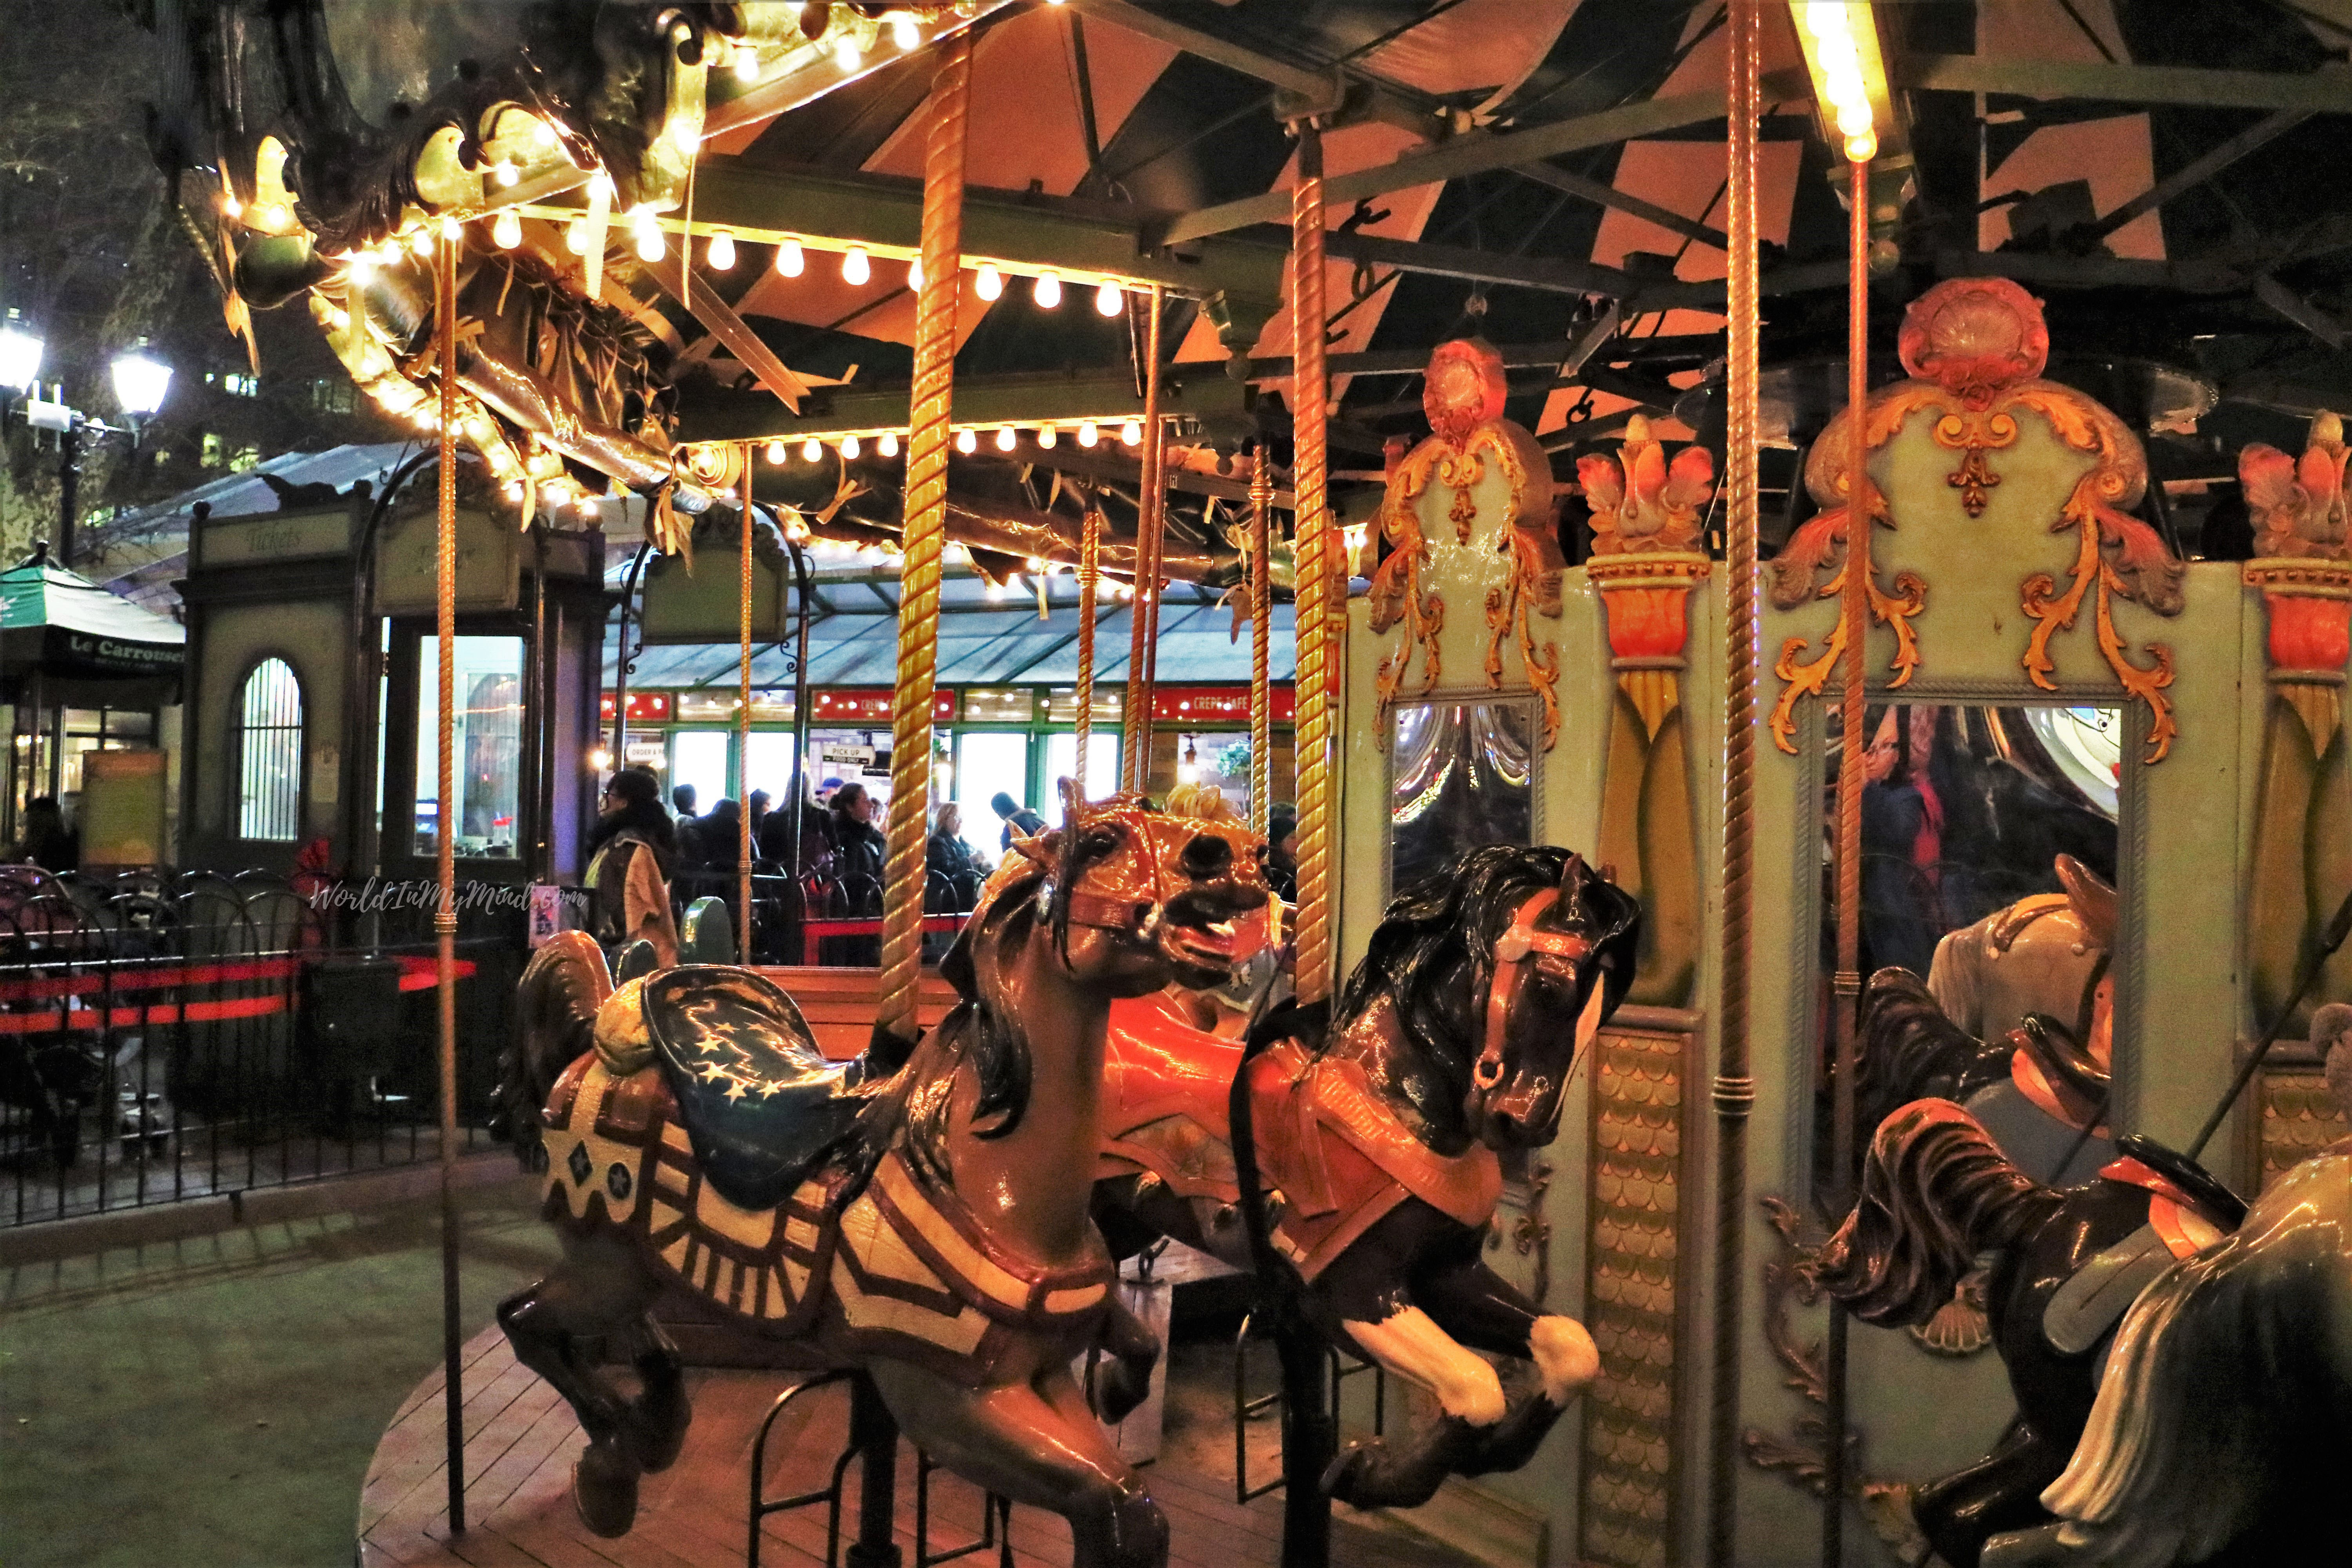 Carousel in Bryant park, New York